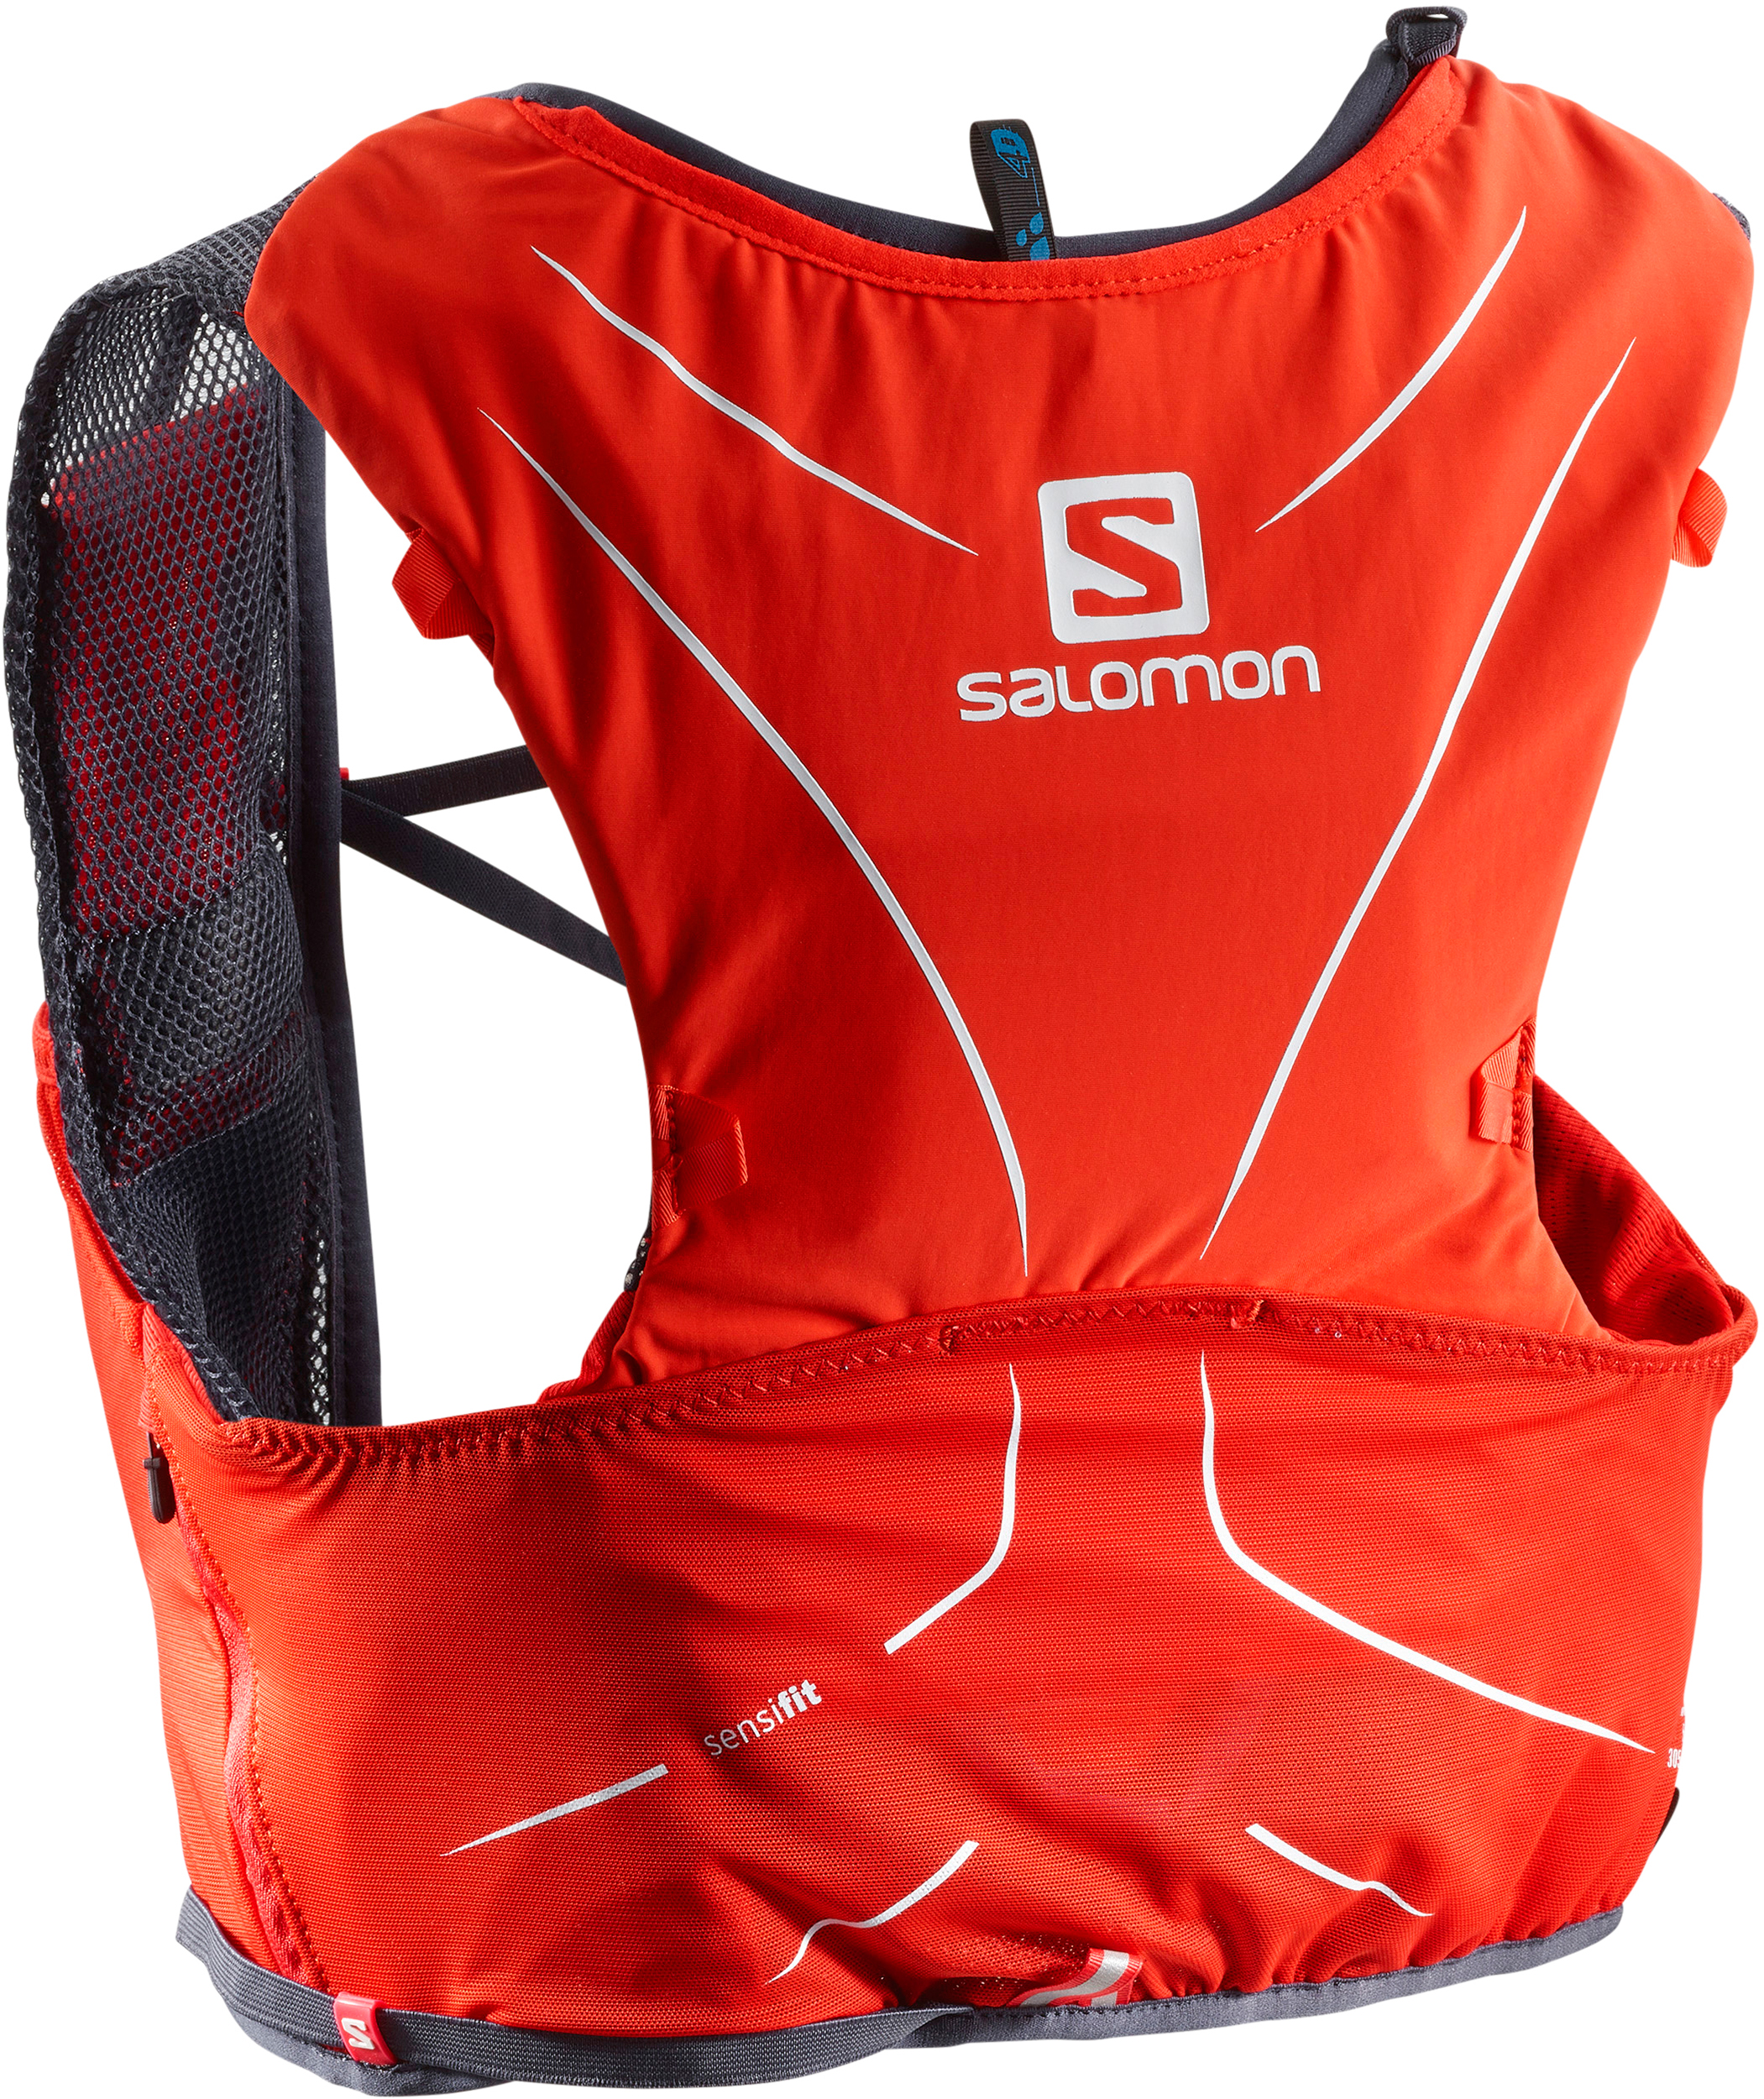 591a41ce74 Salomon Running vests and belts | MEC